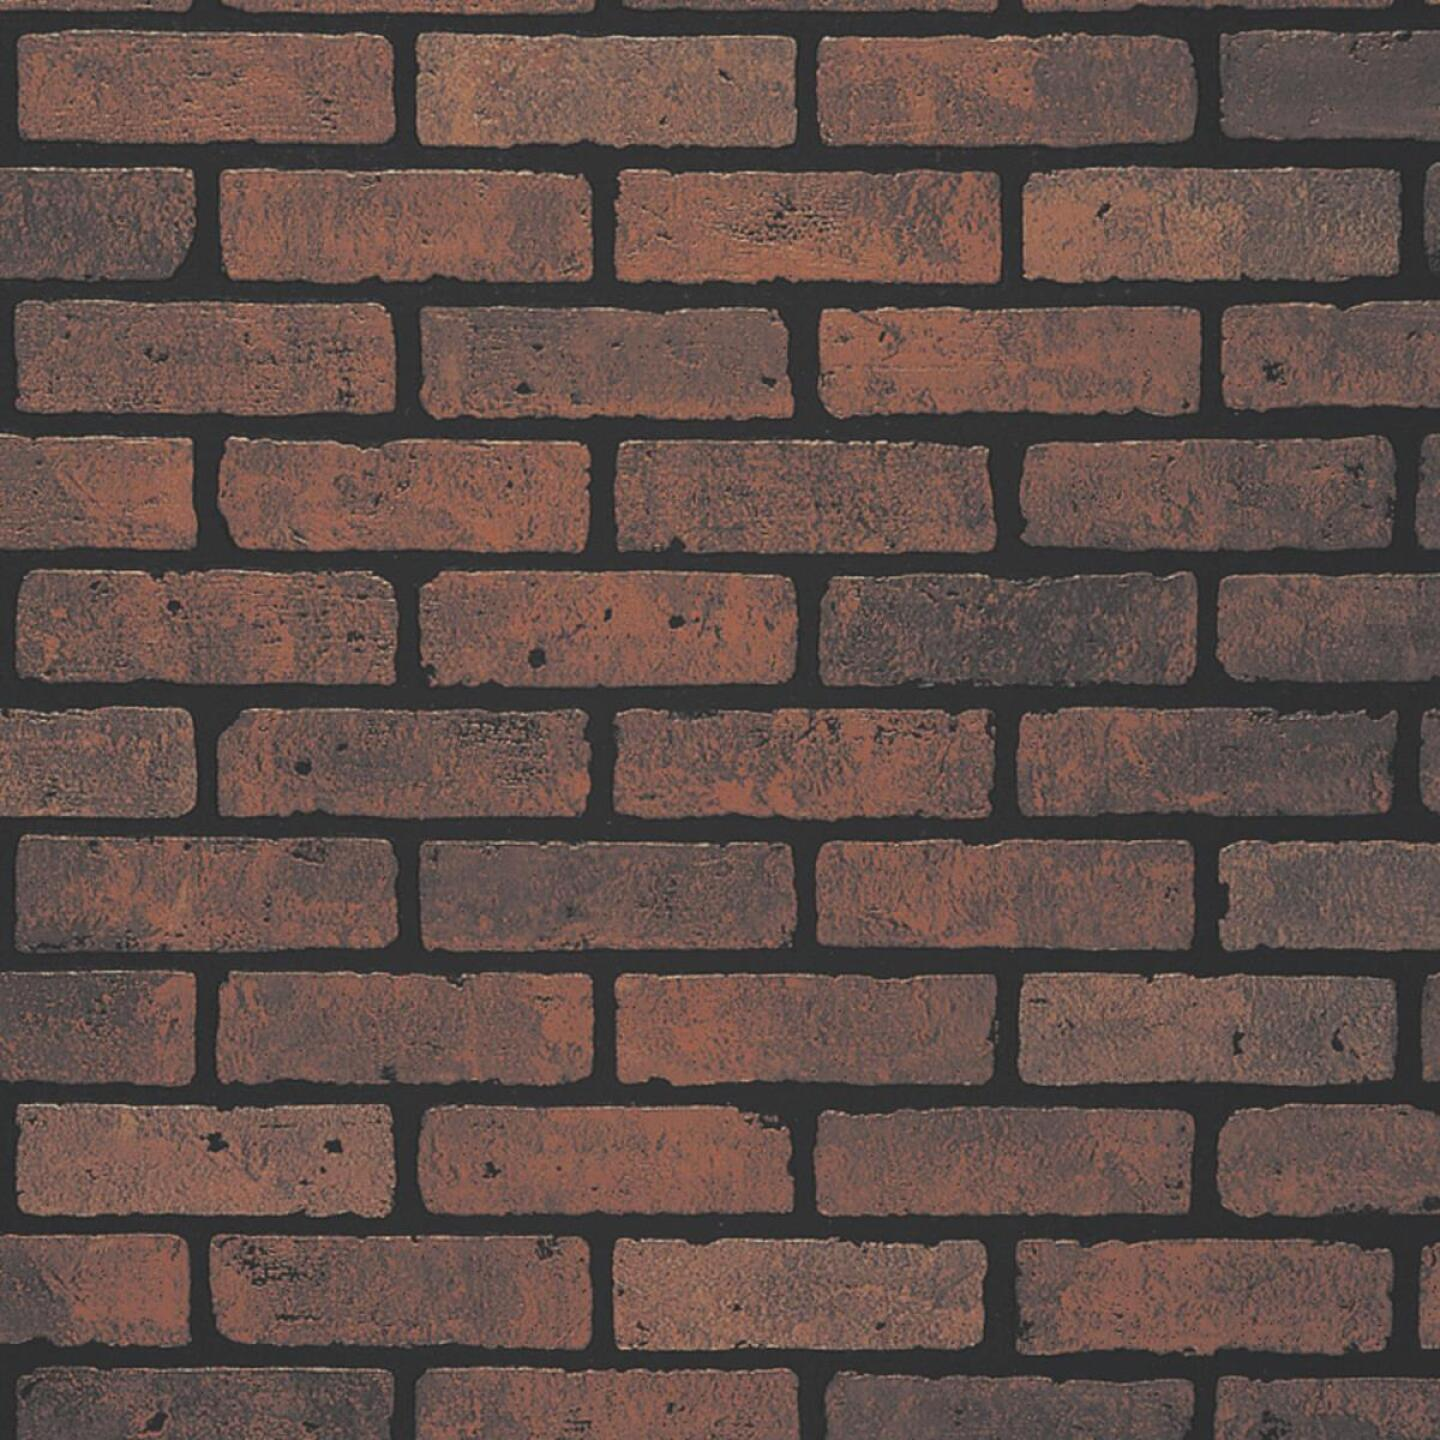 DPI 4 Ft. x 8 Ft. x 1/4 In. Red Brick Gaslight II Wall Paneling Image 1